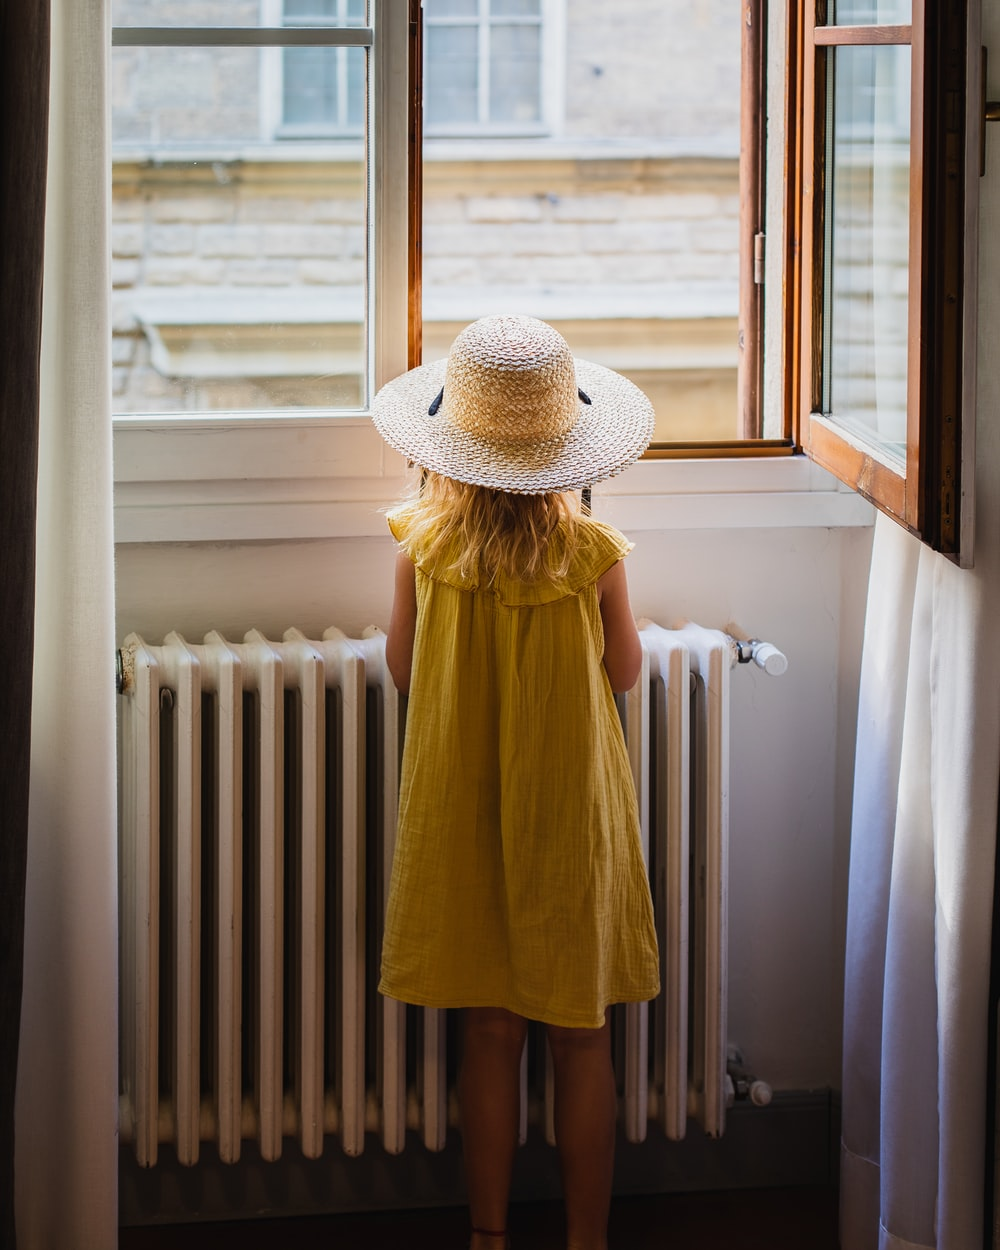 standing girl wearing yellow dress and hat looking outside the window